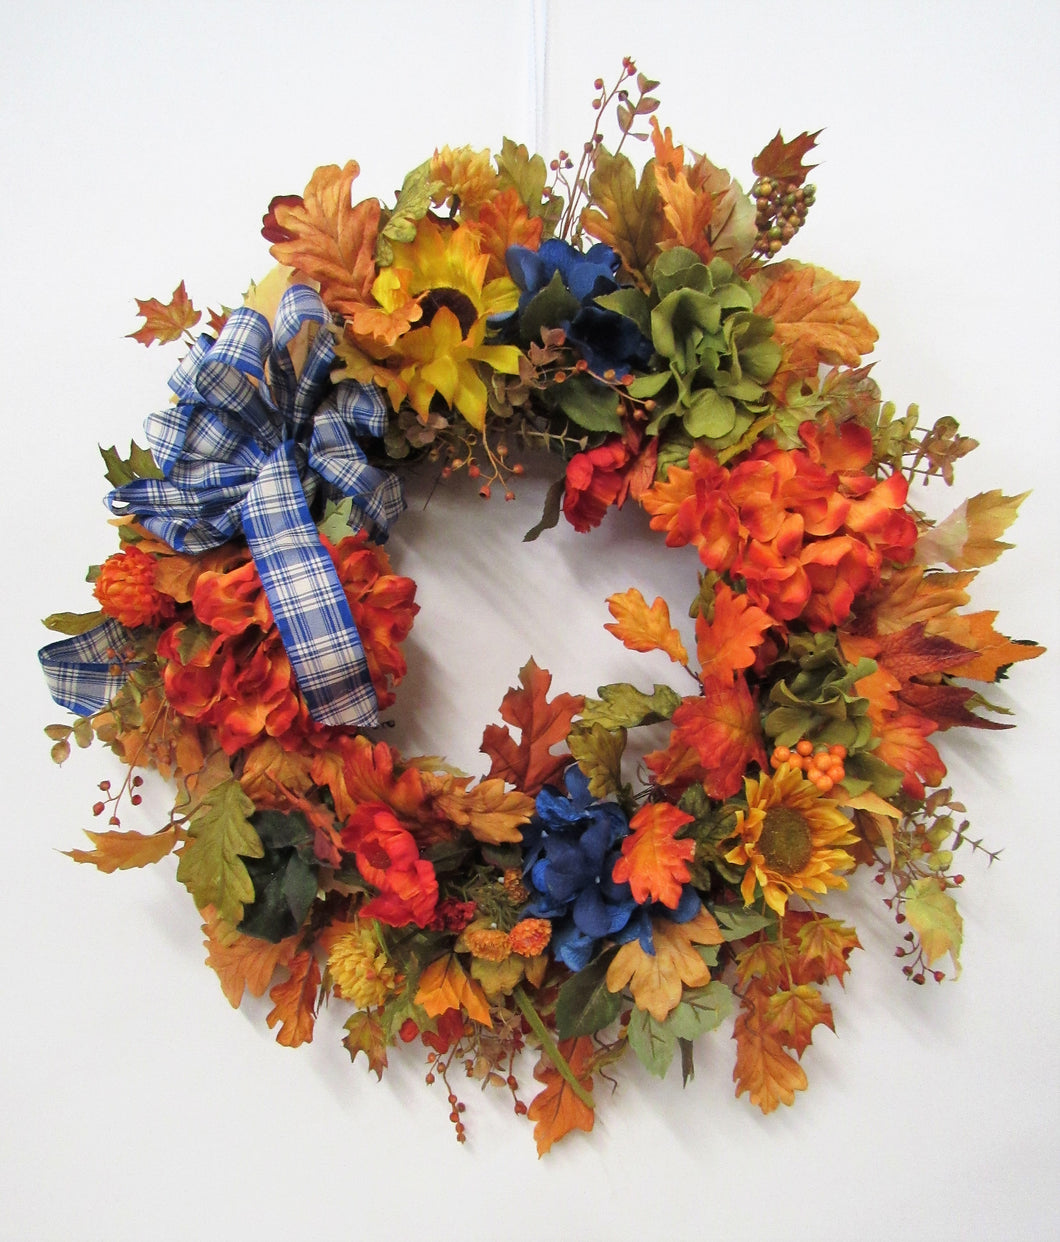 Gallery/Harv82 - April's Garden Wreath